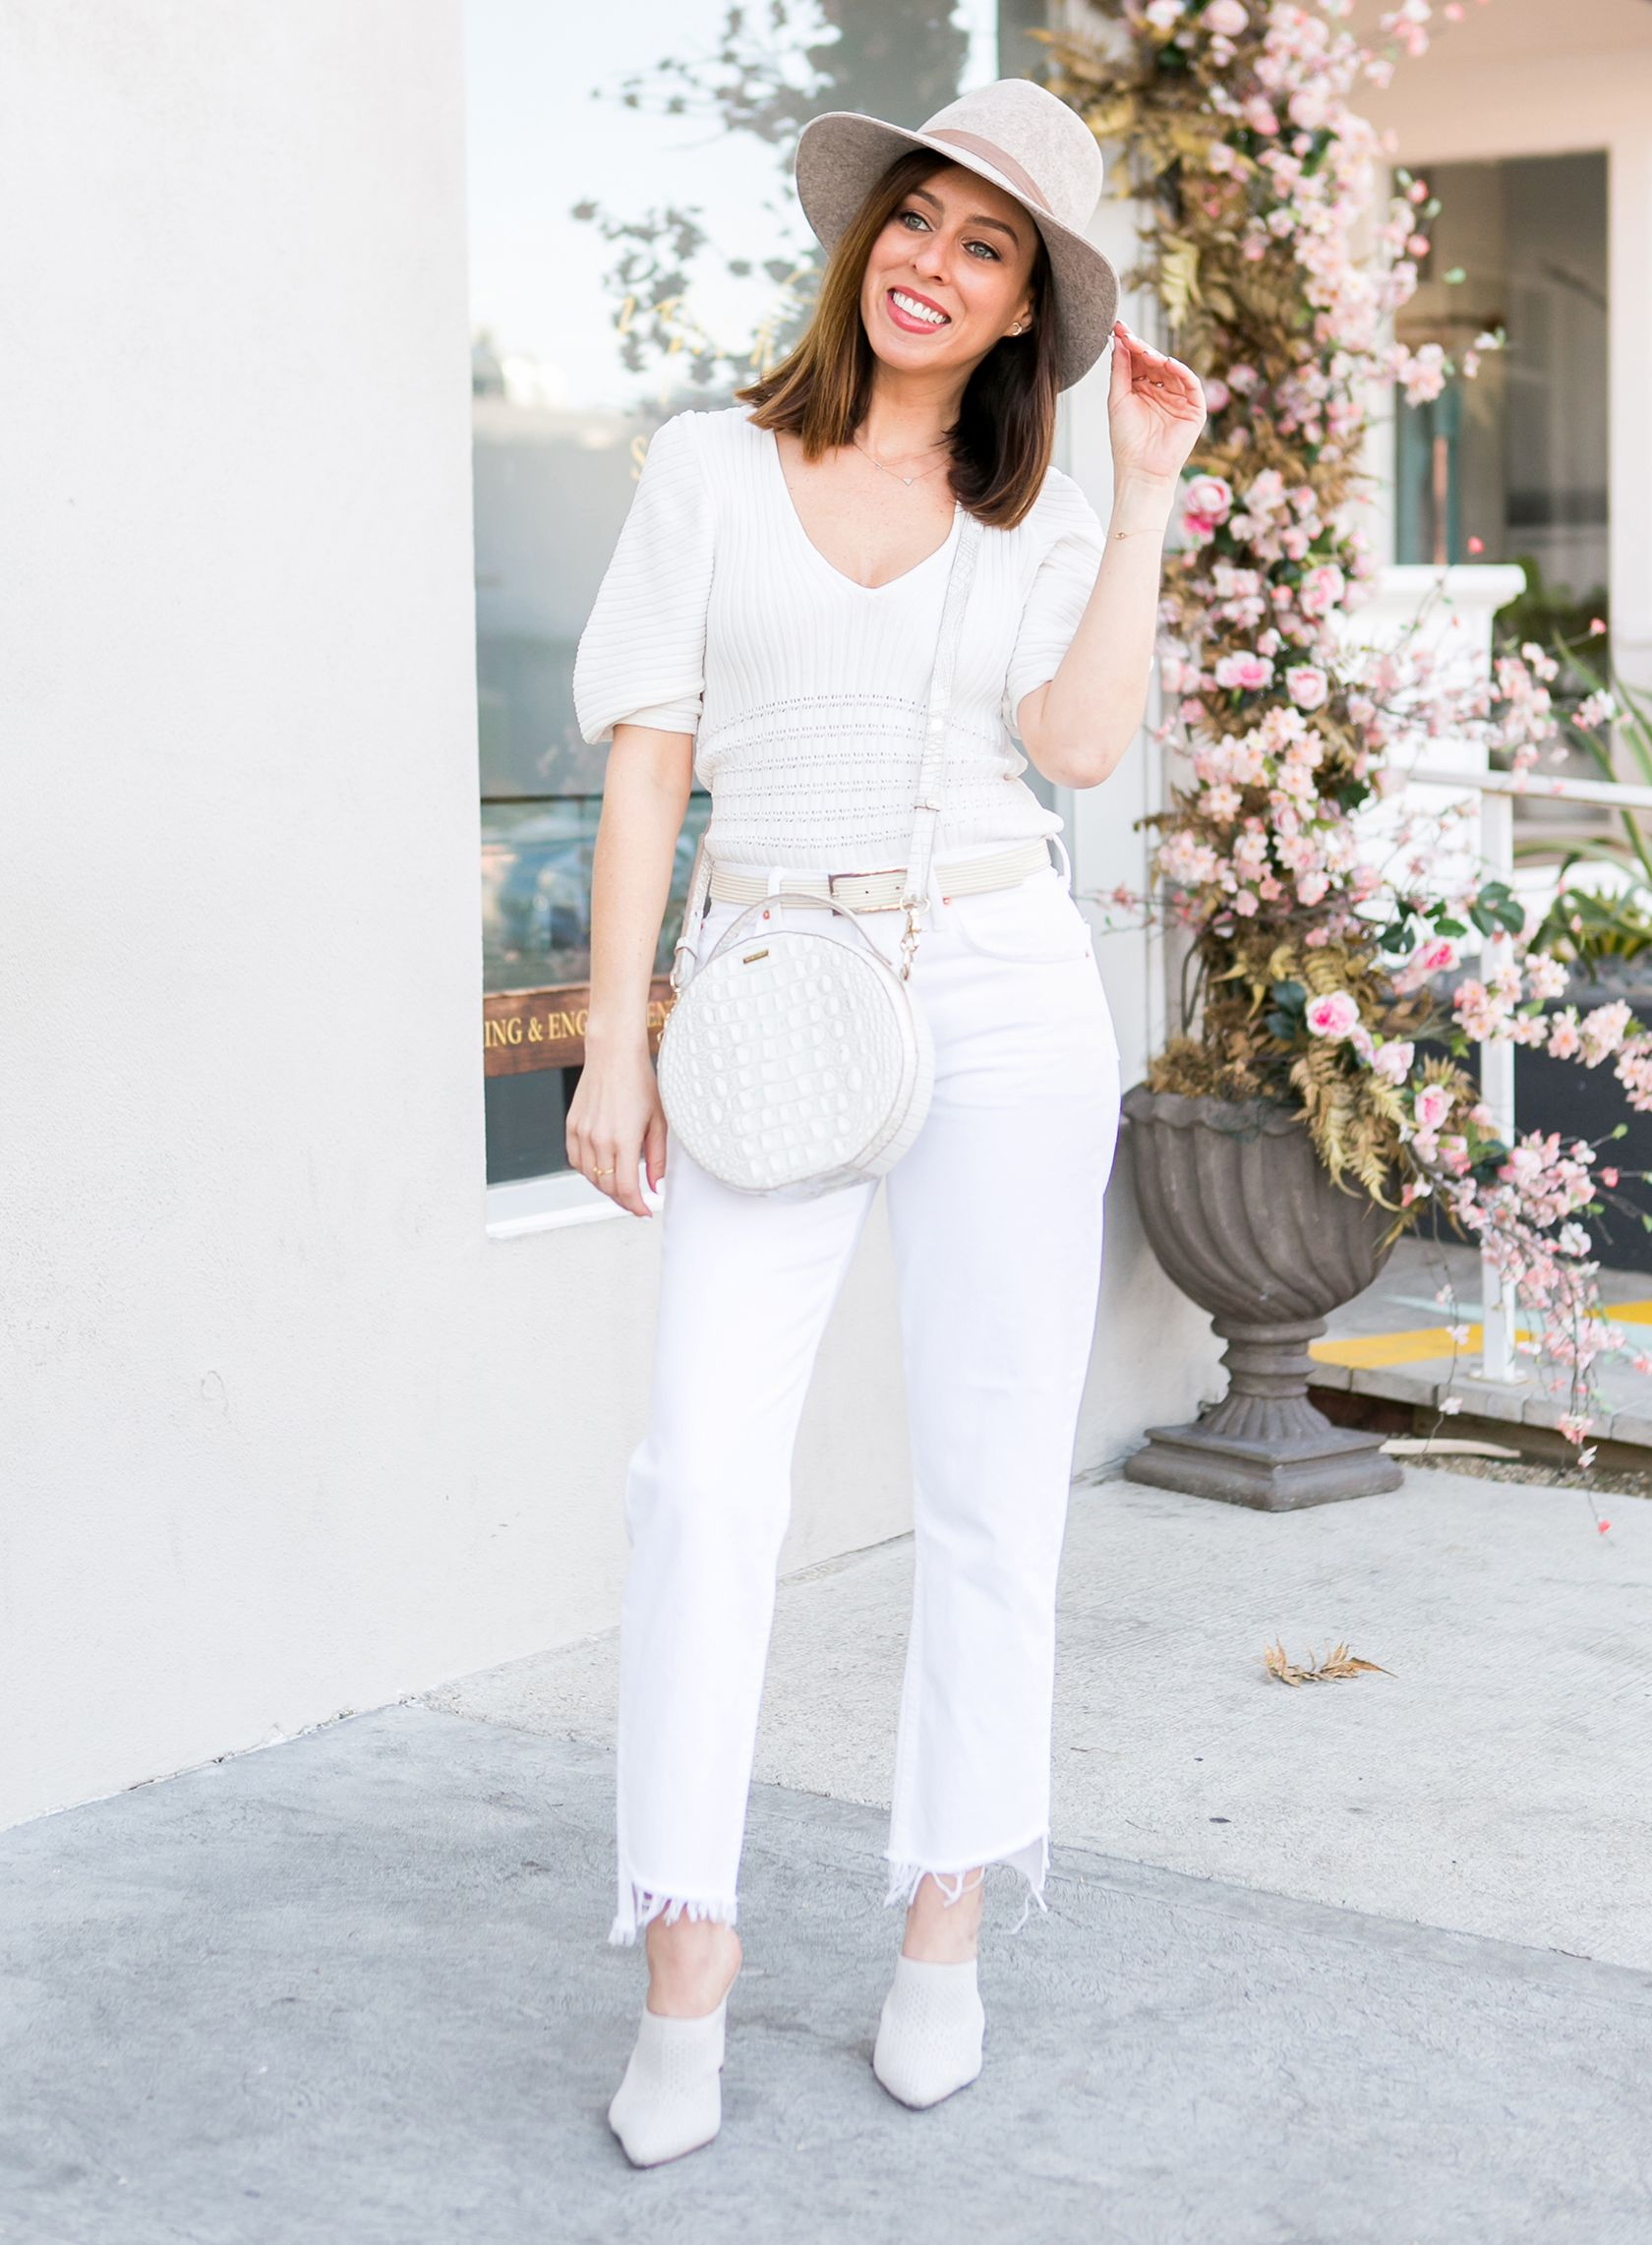 b47681646a67 Sydne Style shows all white outfit ideas for spring in grlfrnd jeans  white   whitejeans  springtrends  revolve  mules  hats  janessaleone  brahmin   ...